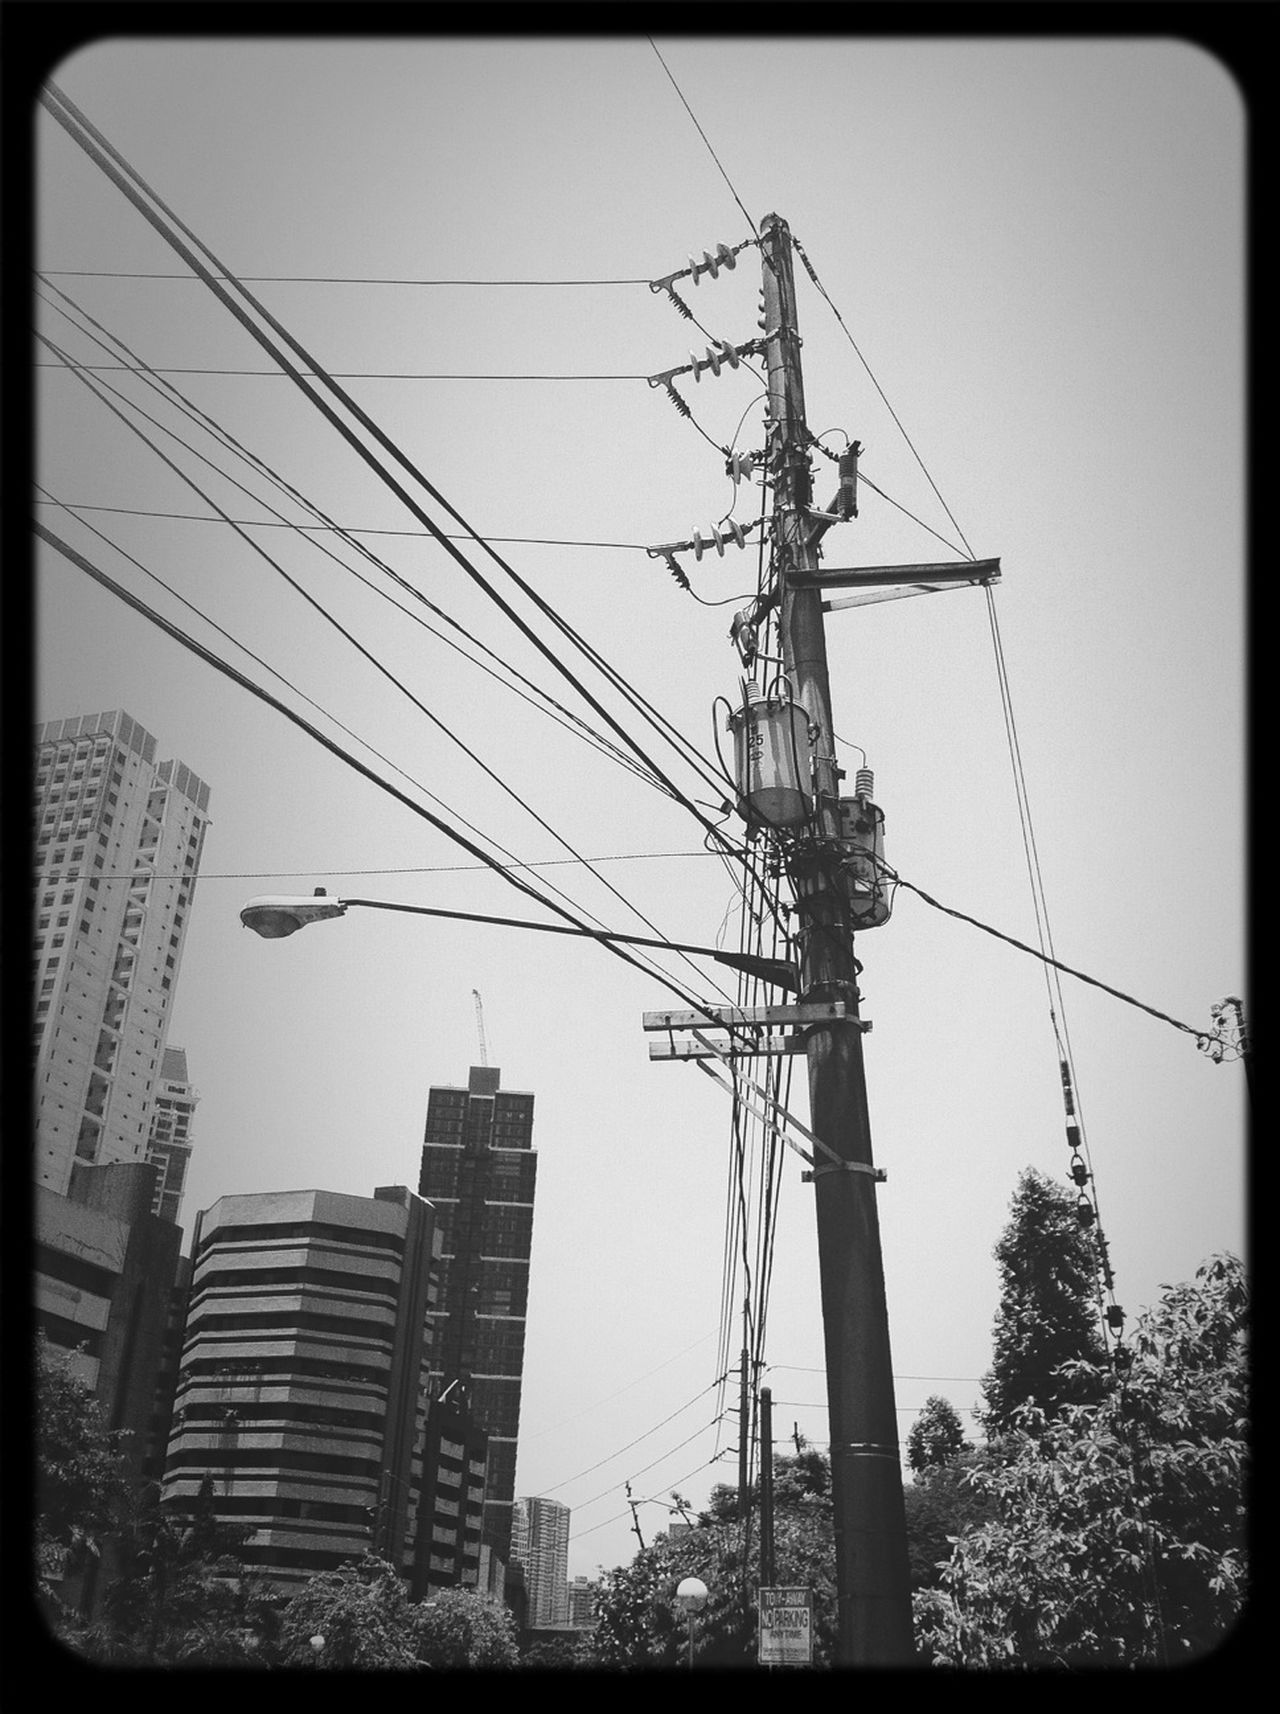 Streetphotography Blackandwhite Power Lines Streetphoto_bw